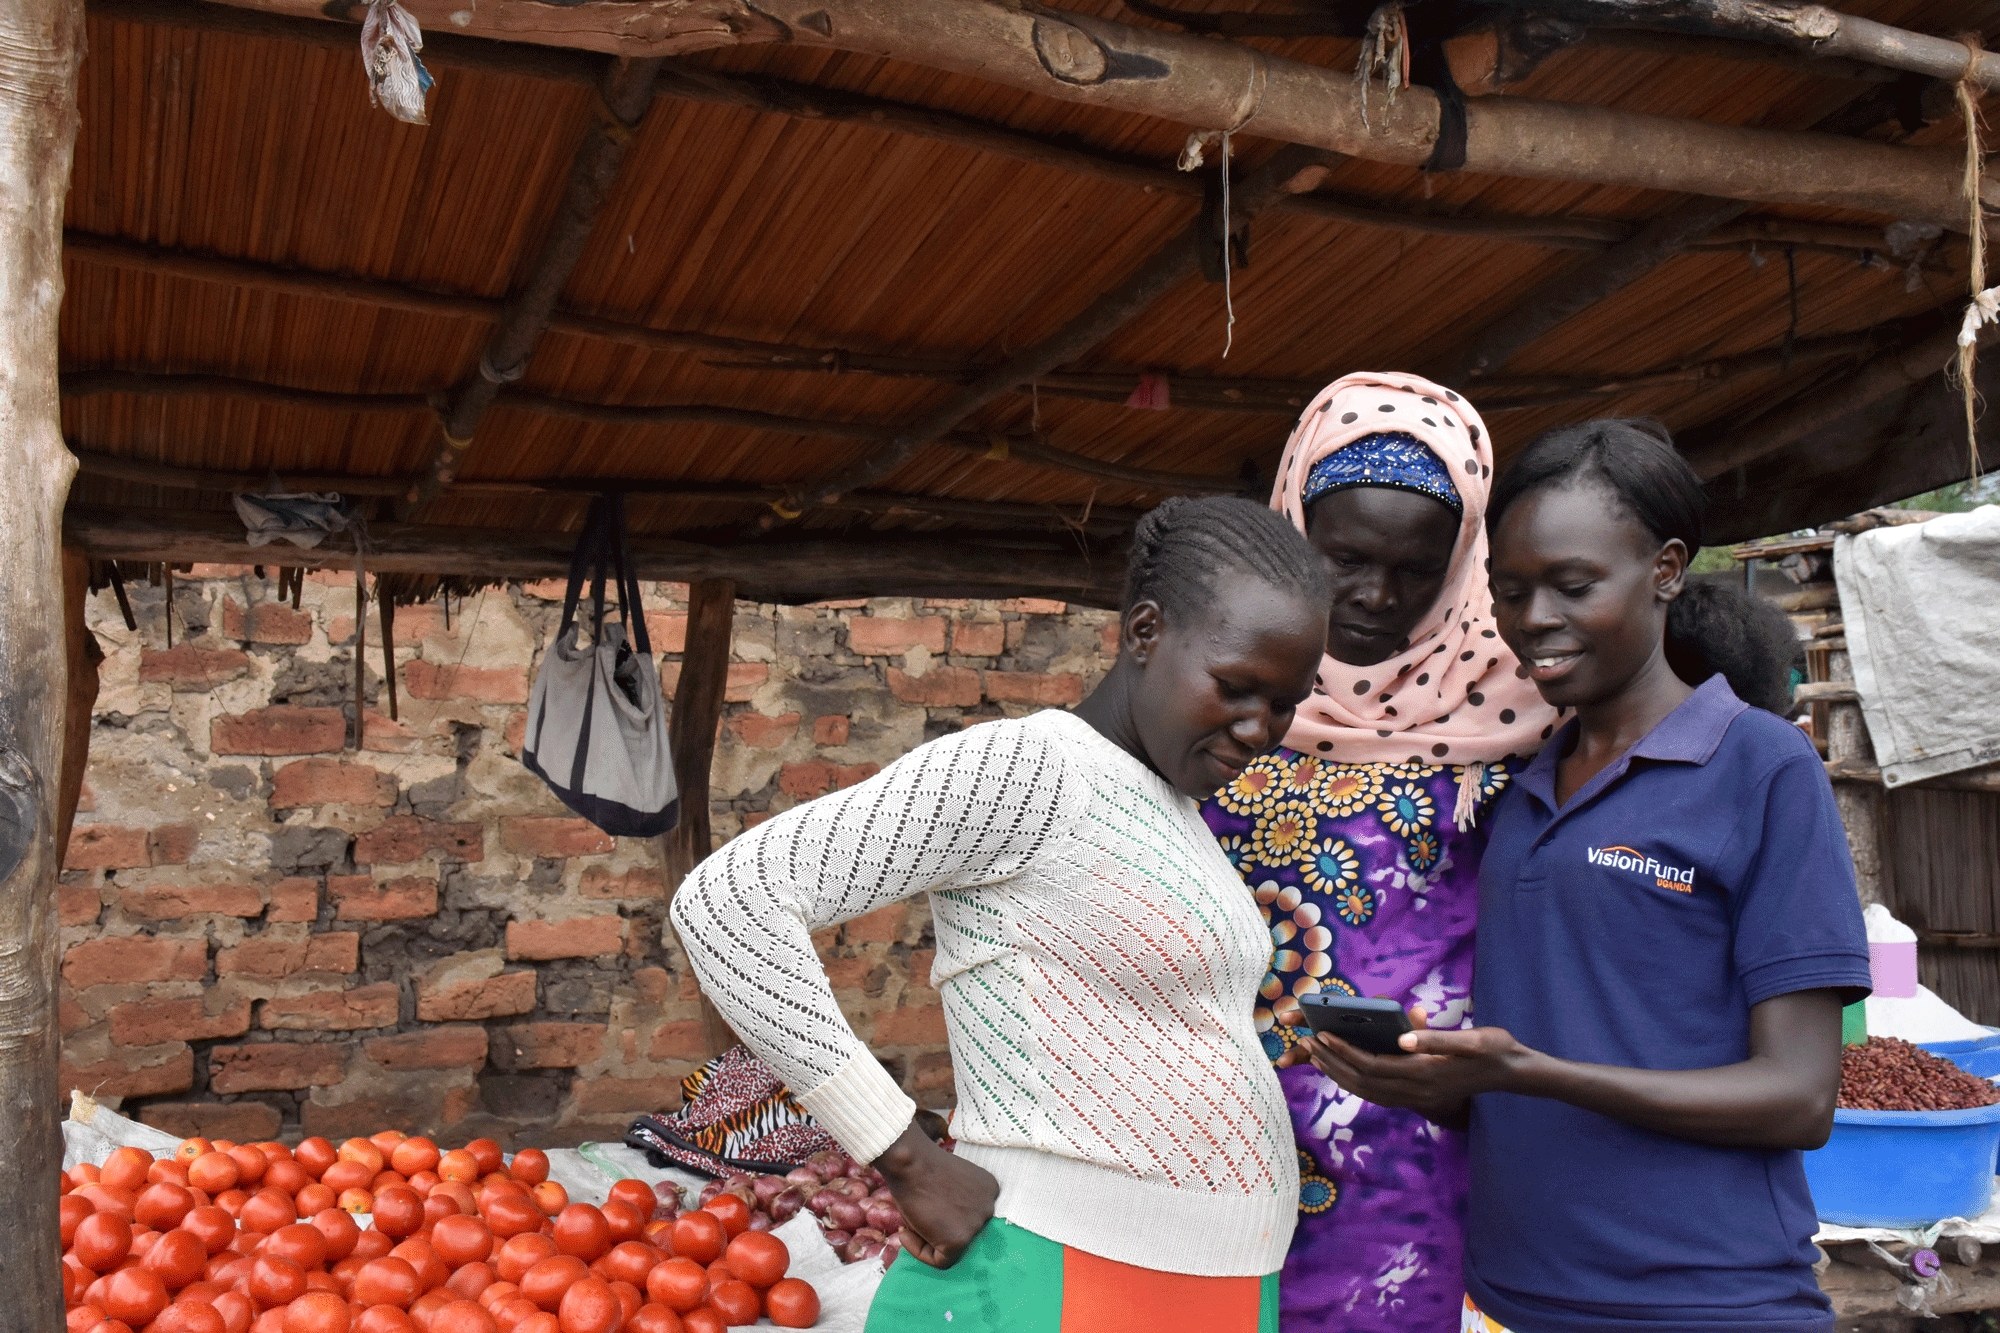 VisionFund loan officer shows client how to make repayments via mobile money